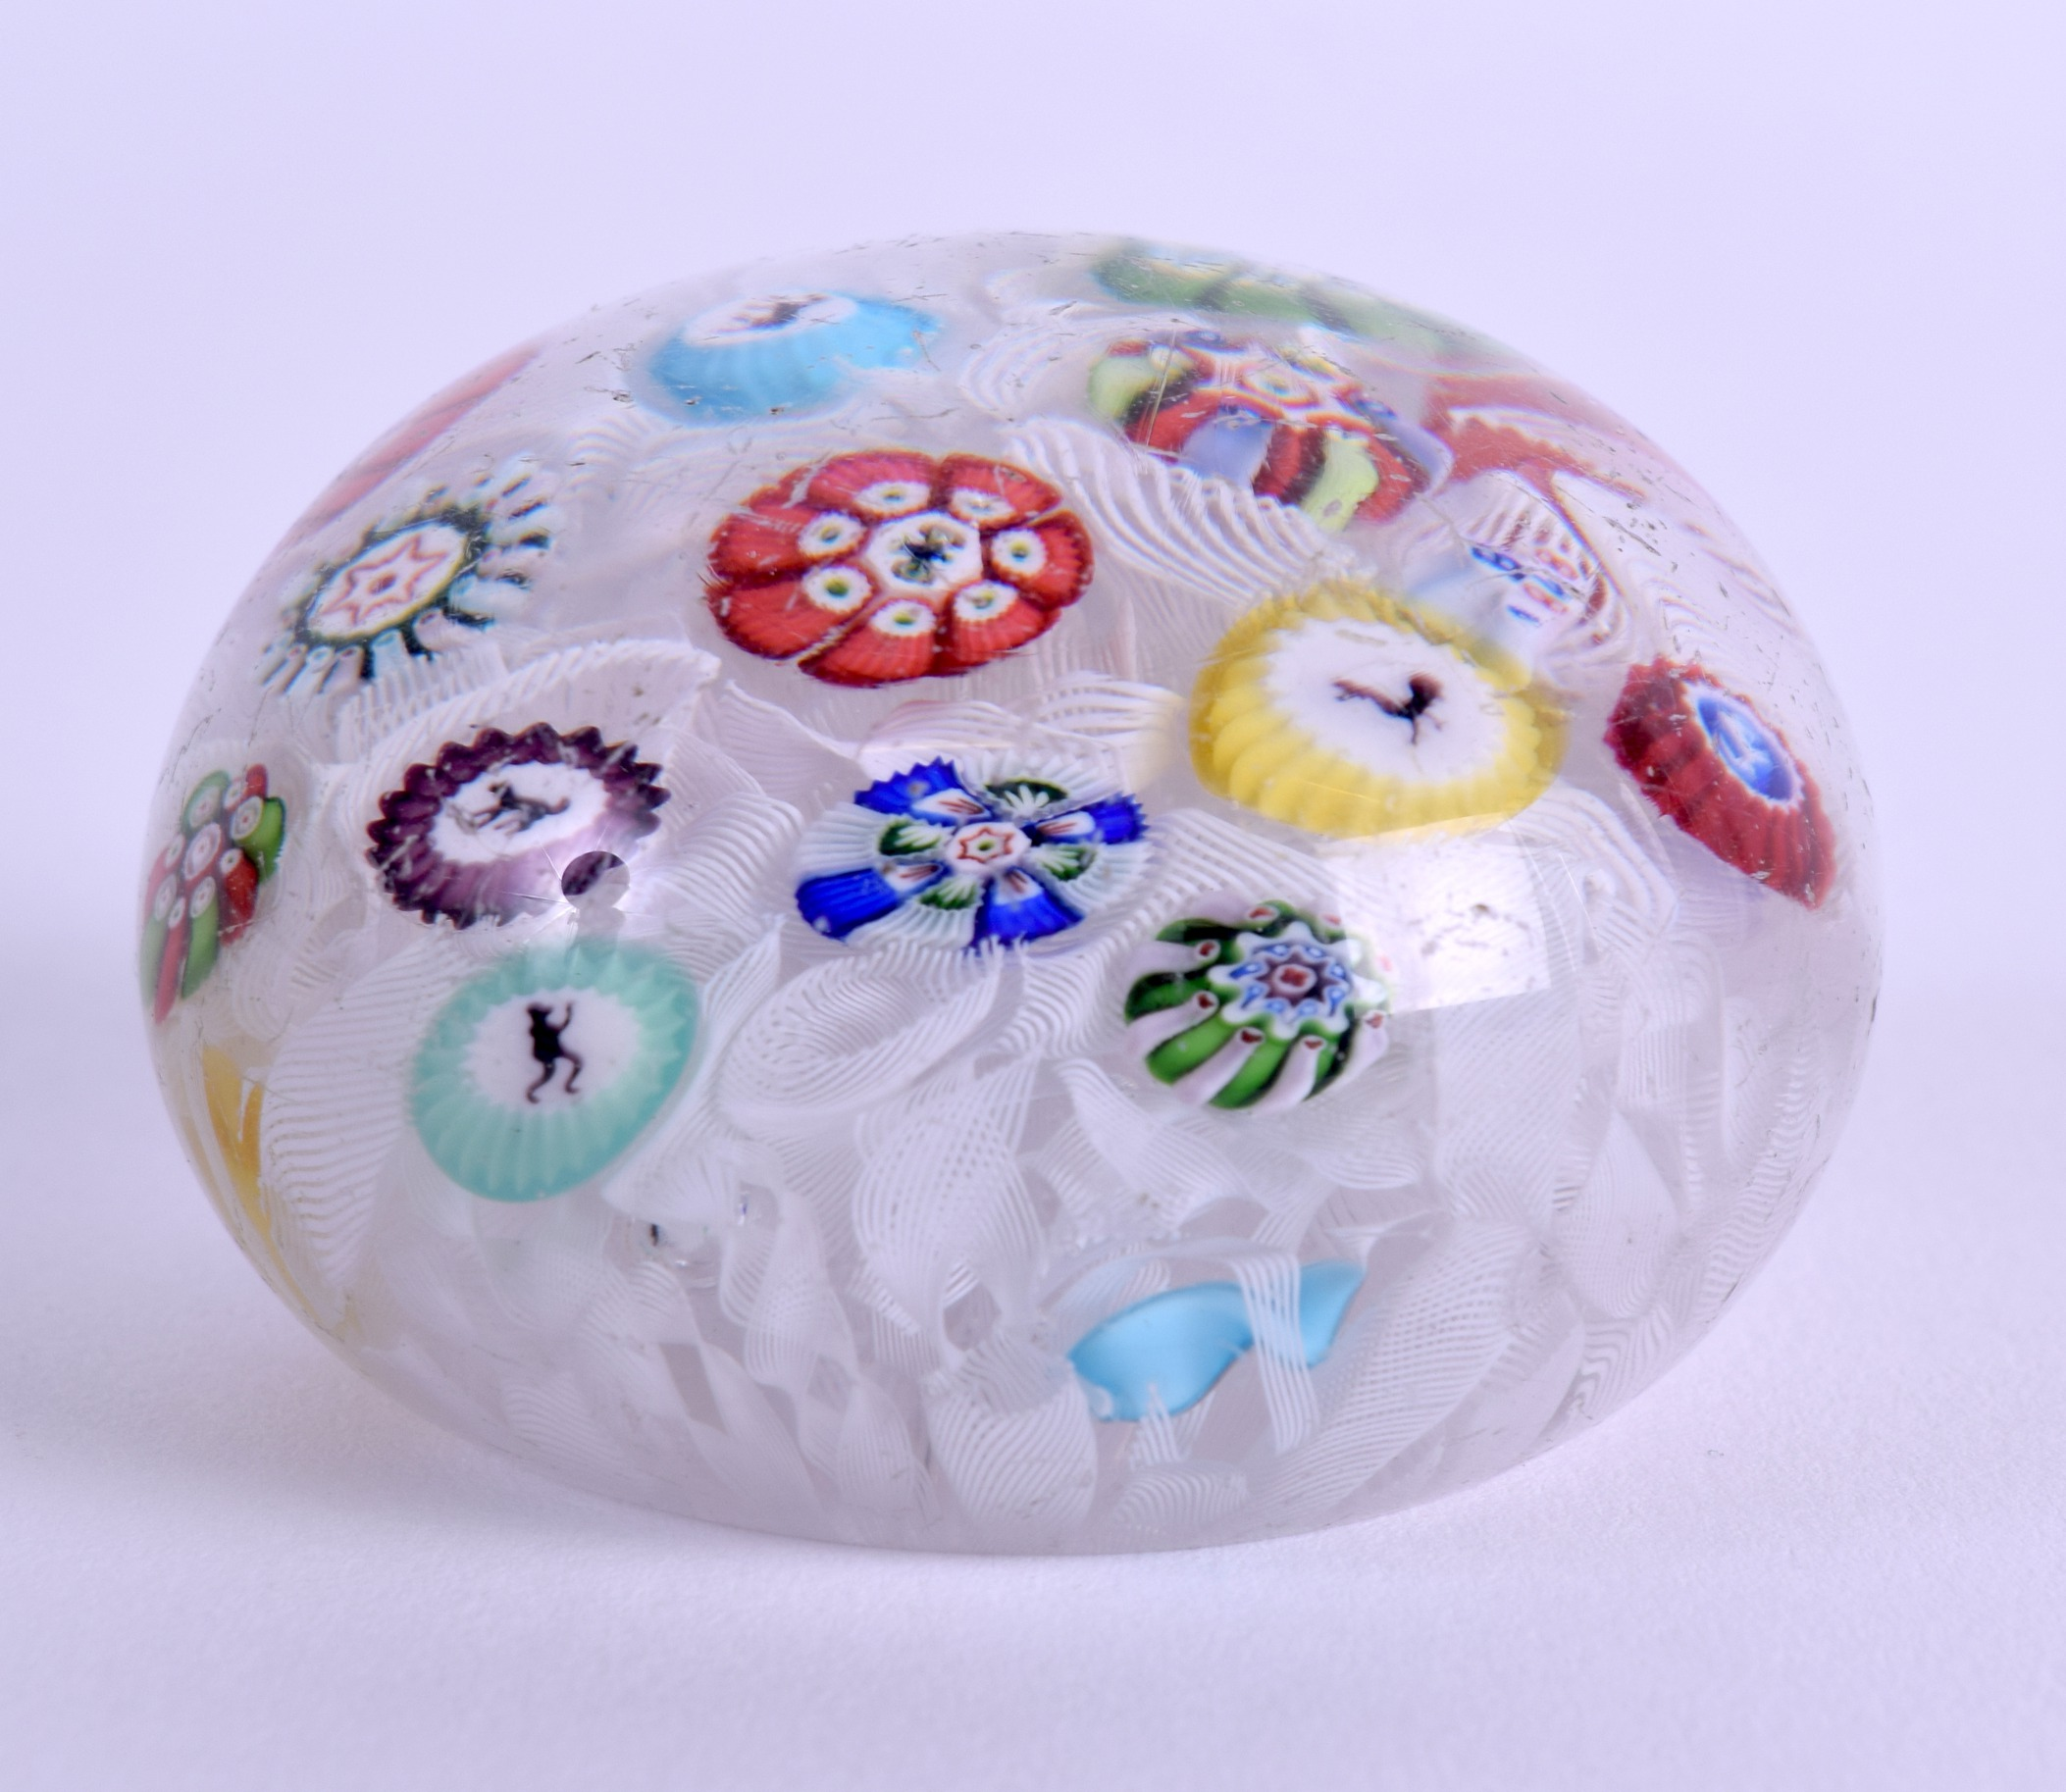 Lot 23 - A 19TH CENTURY FRENCH BACCARAT GLASS SCRAMBLE PAPERWEIGHT dated 1848. 6 cm wide.